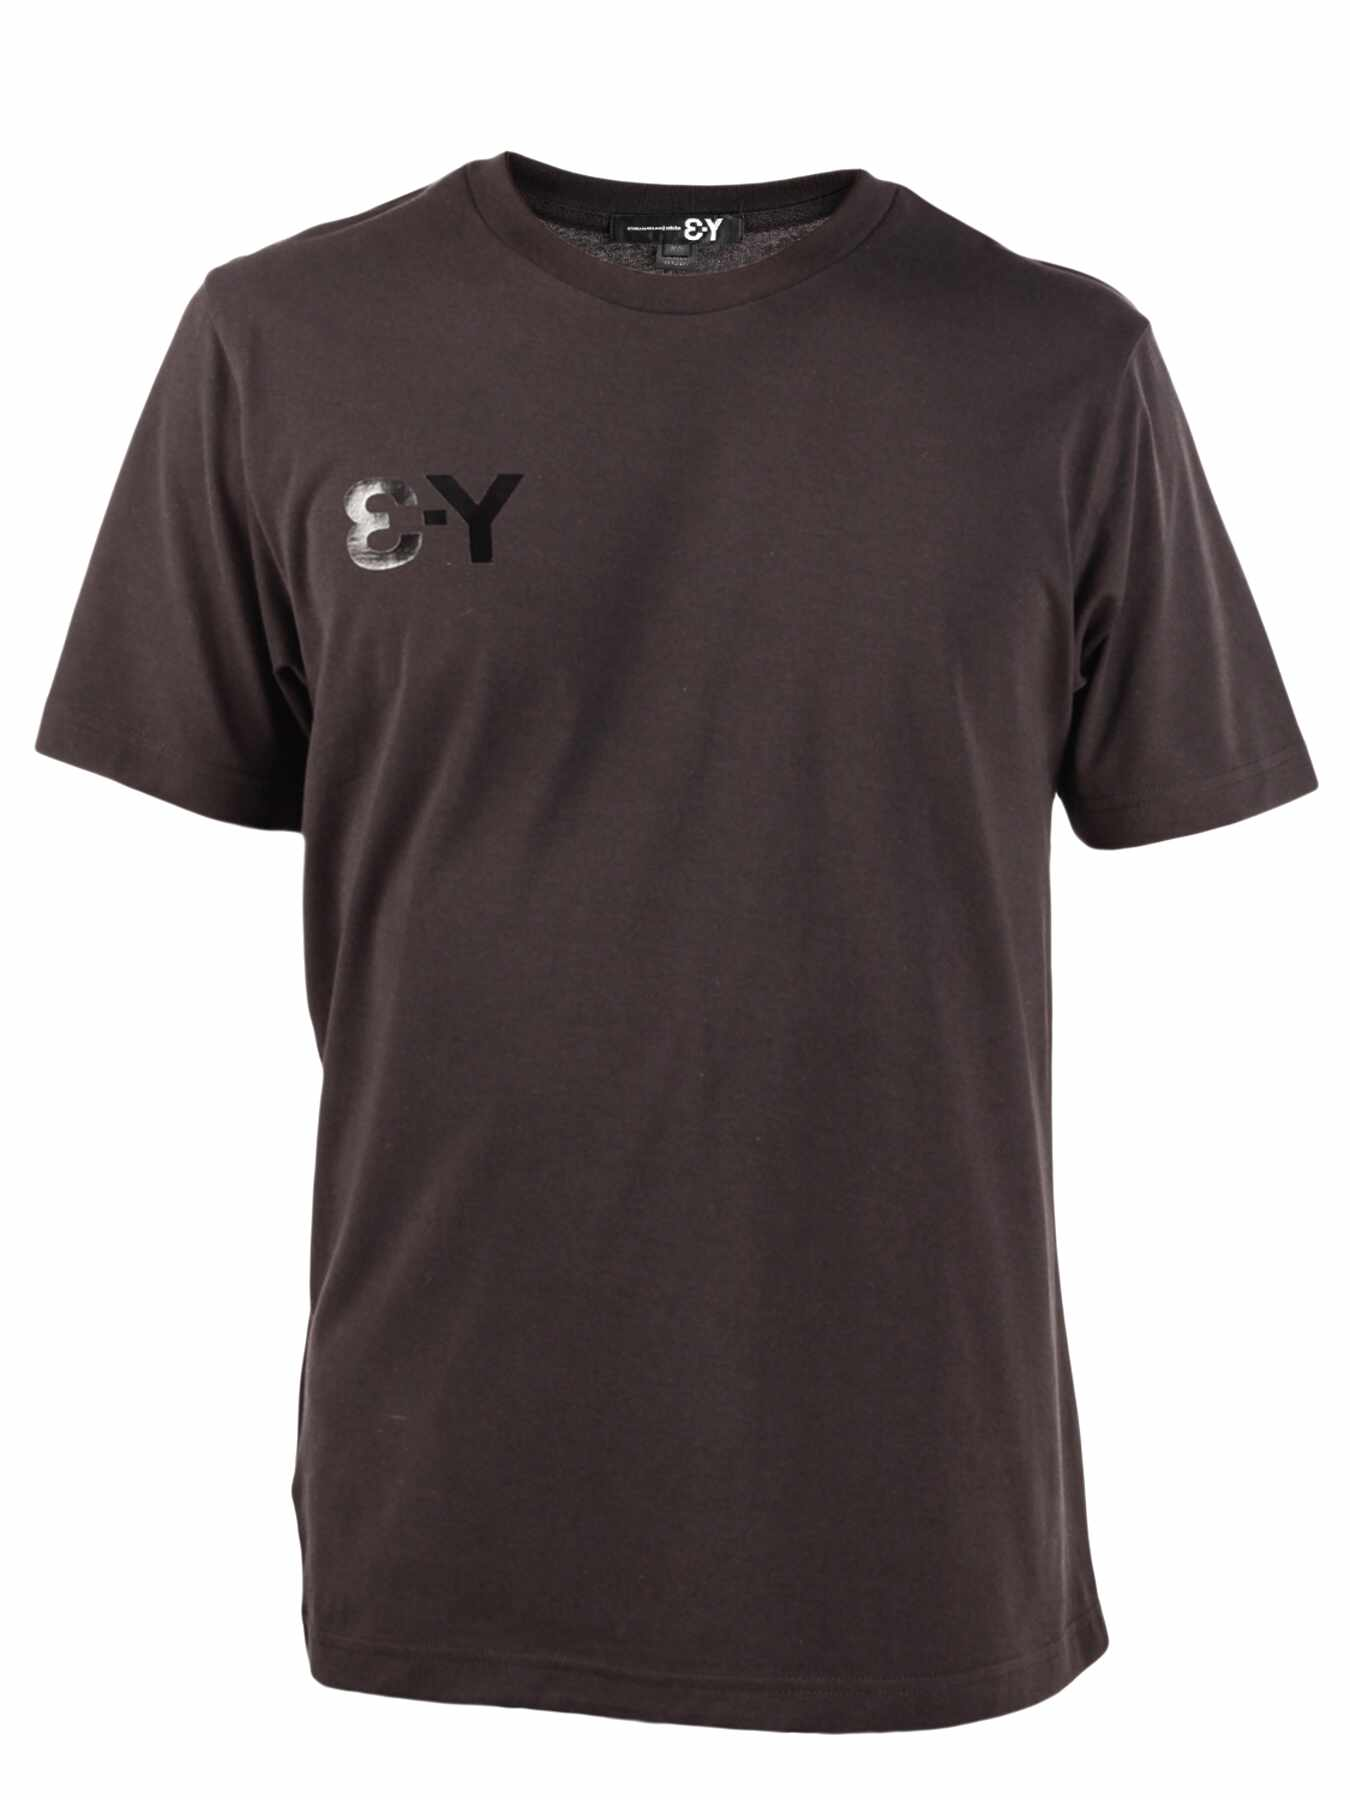 y3 t shirt for sale